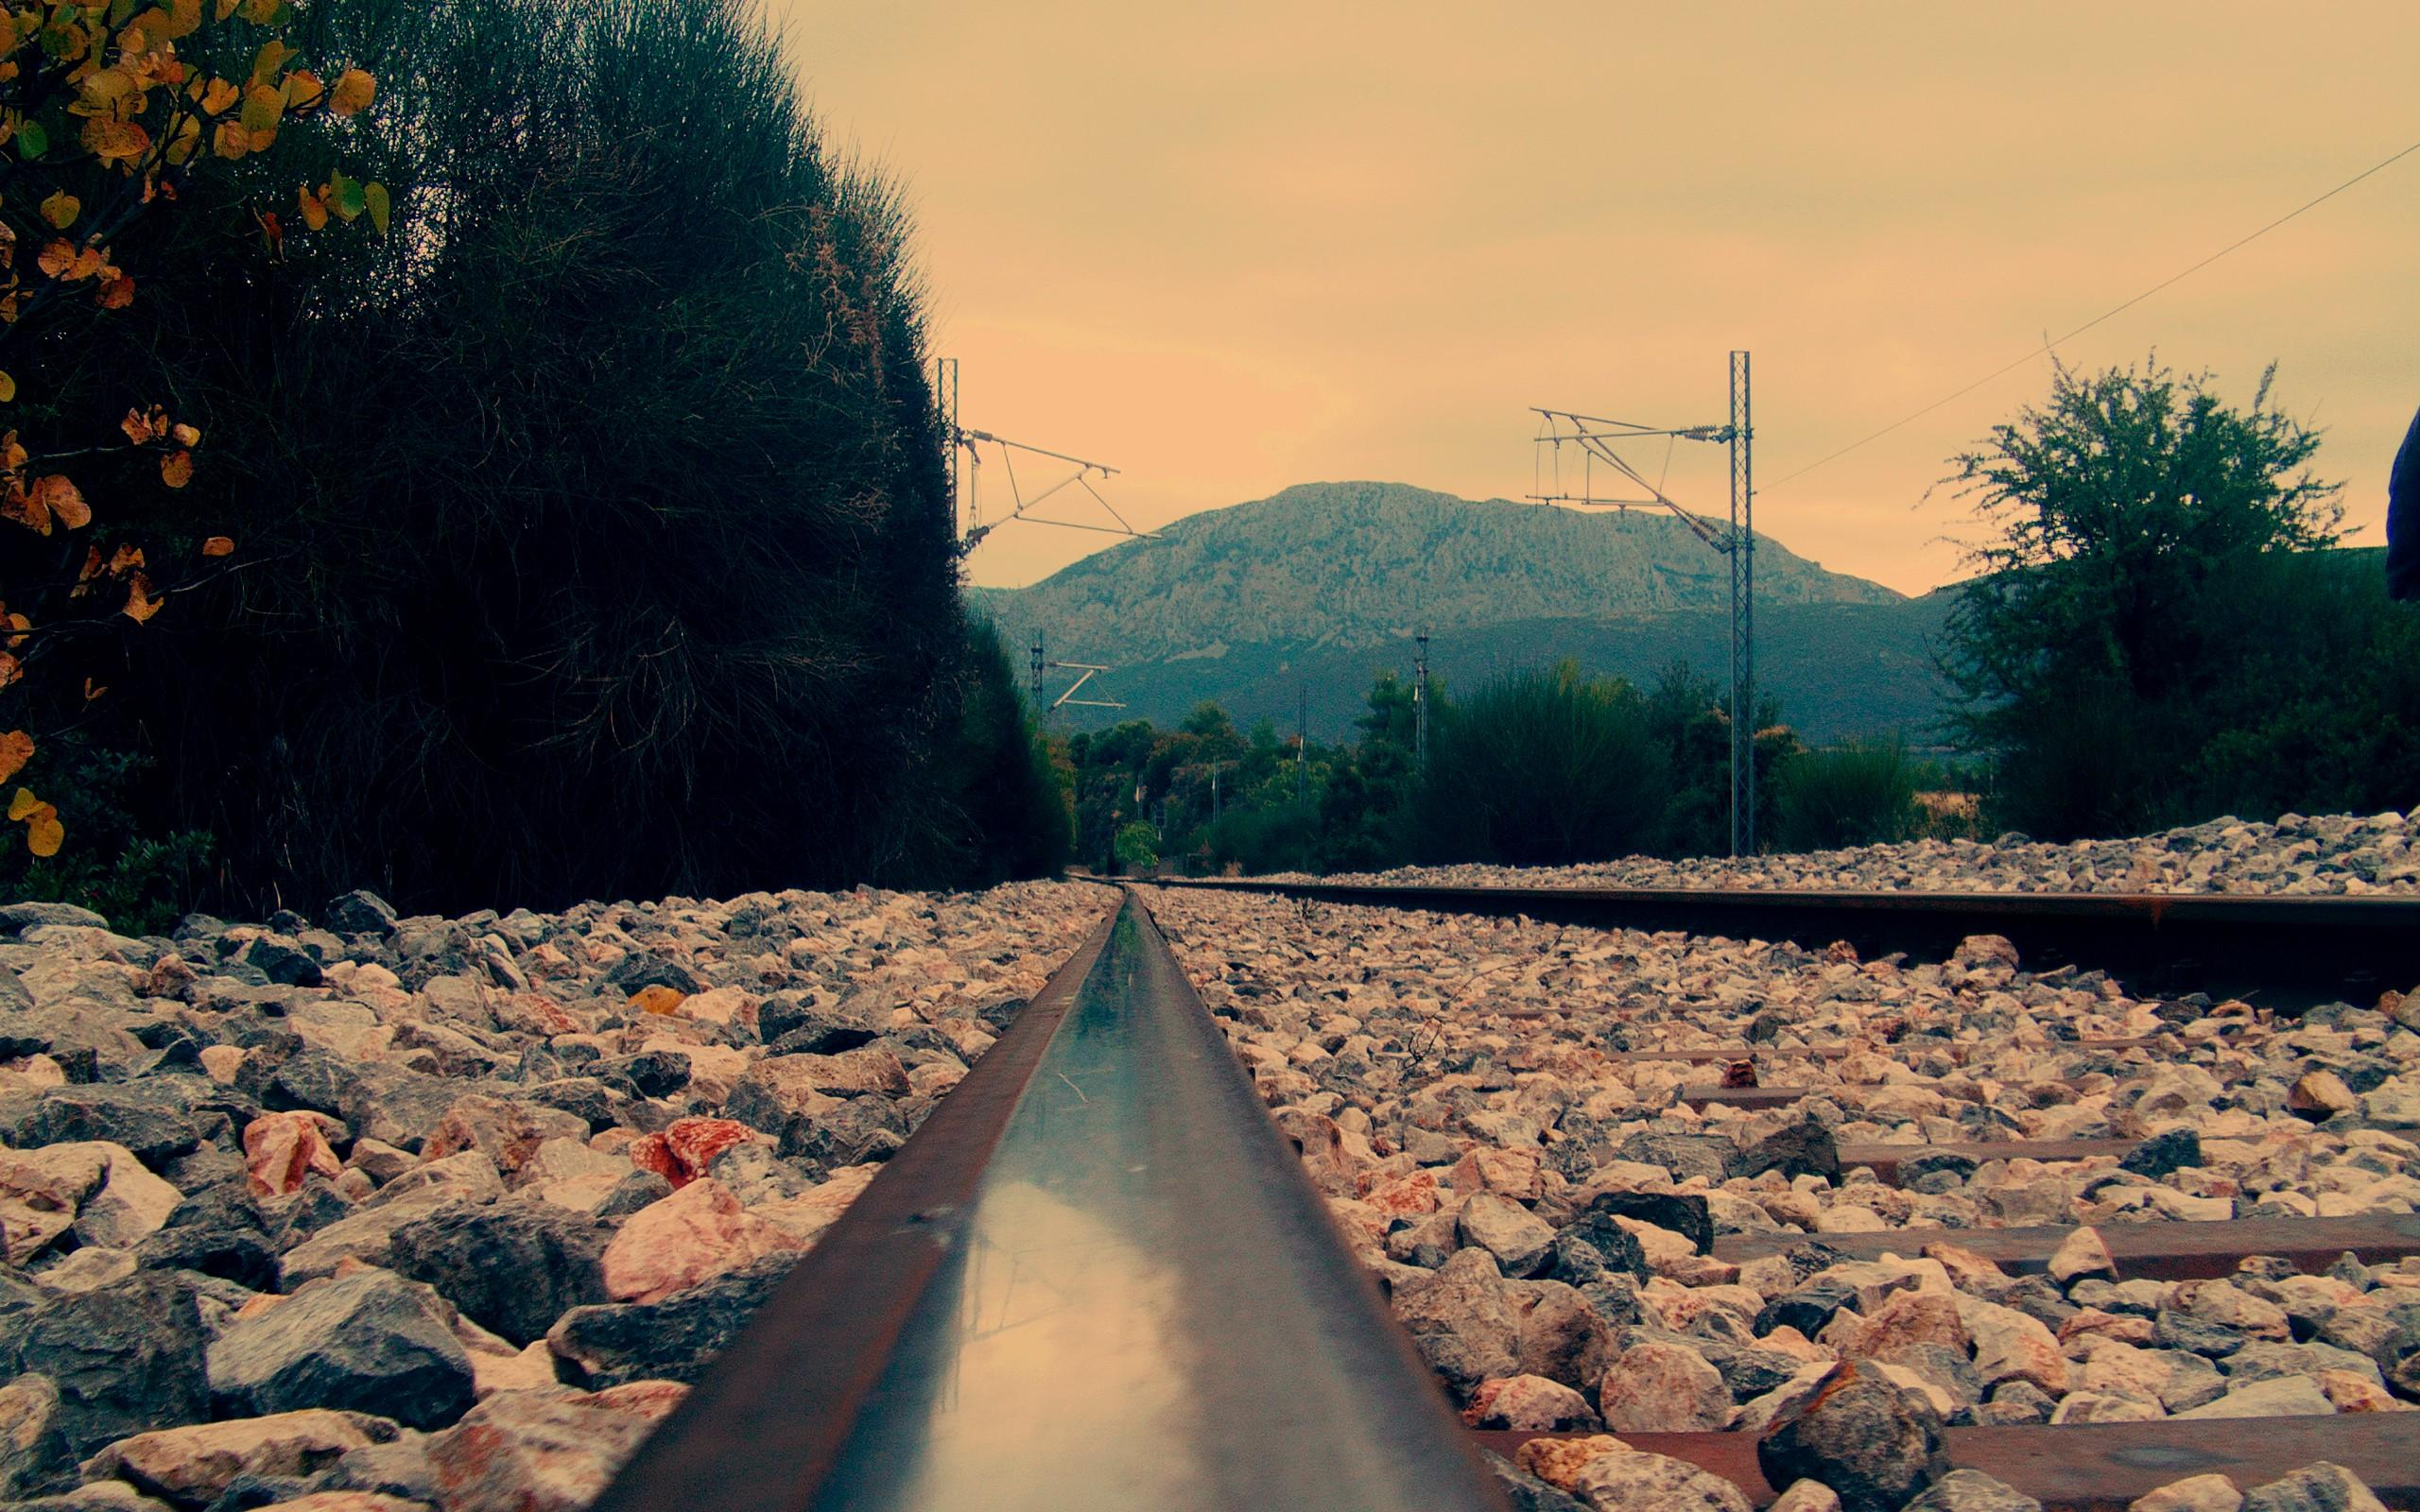 Train track wallpapers archives - Track wallpaper hd ...